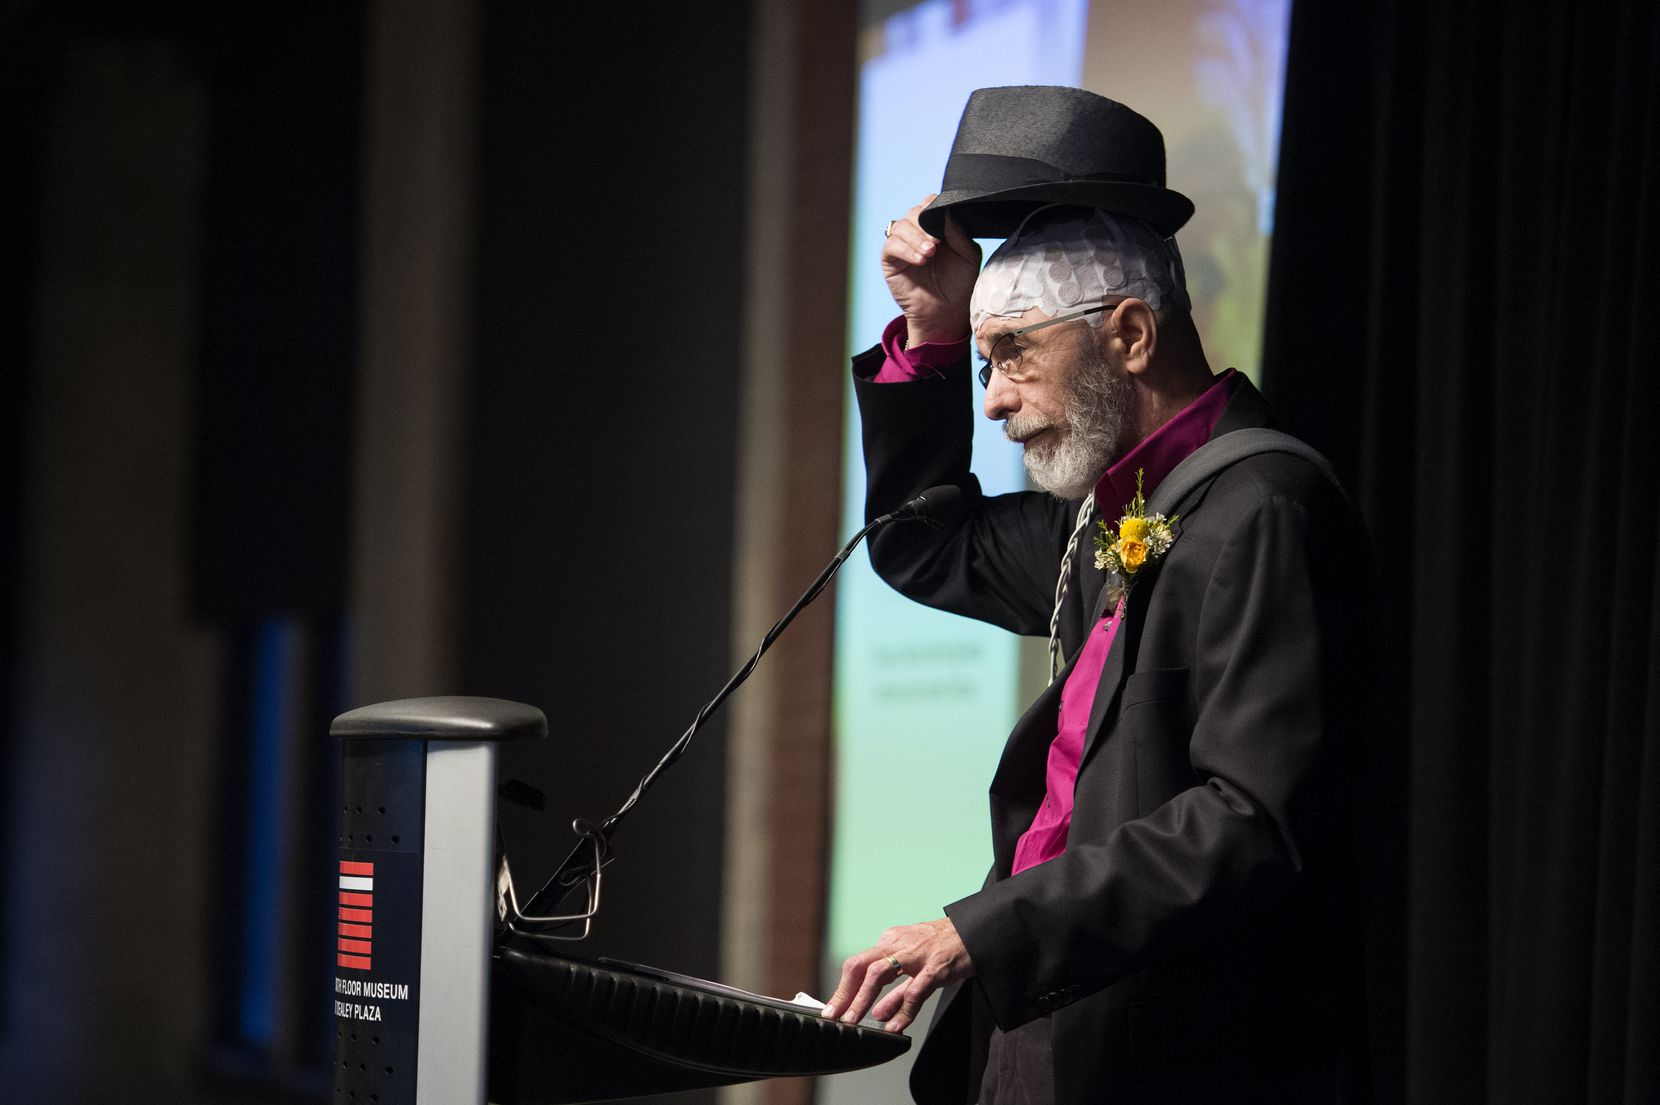 Longtime Dallas Morning News reporter Jeffrey Weiss, who is battling brain cancer, displays treatment apparatus during his acceptance speech at the Press Club of Dallas' North Texas Legends Awards ceremony on  June 3.